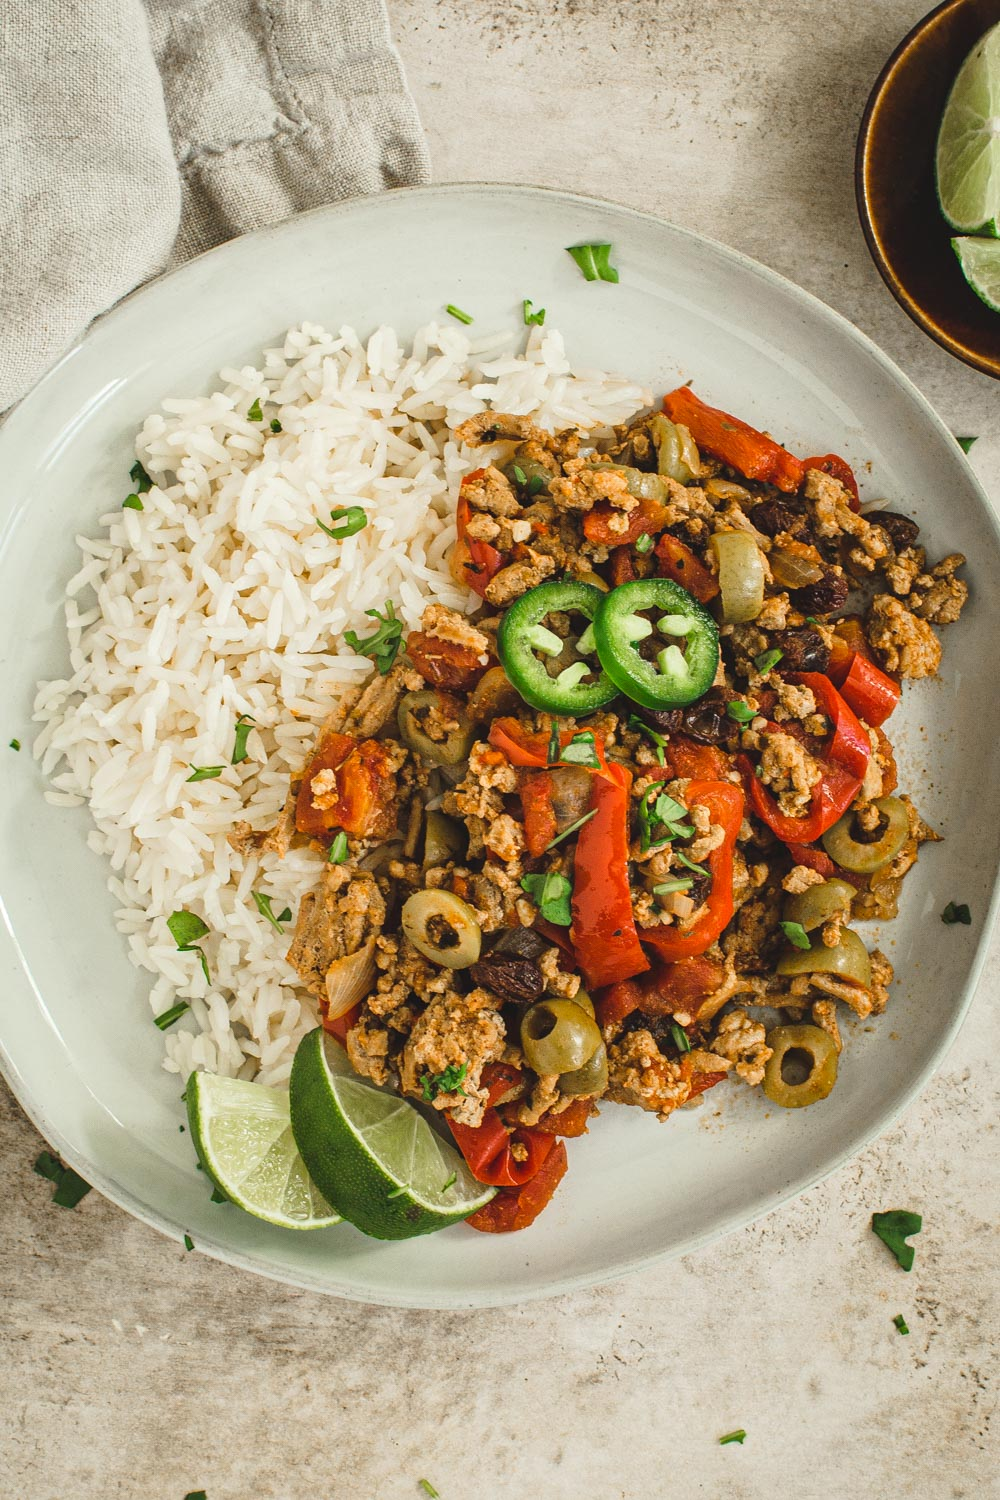 Instant pot picadillo topped with cilantro and lime wedges over rice.